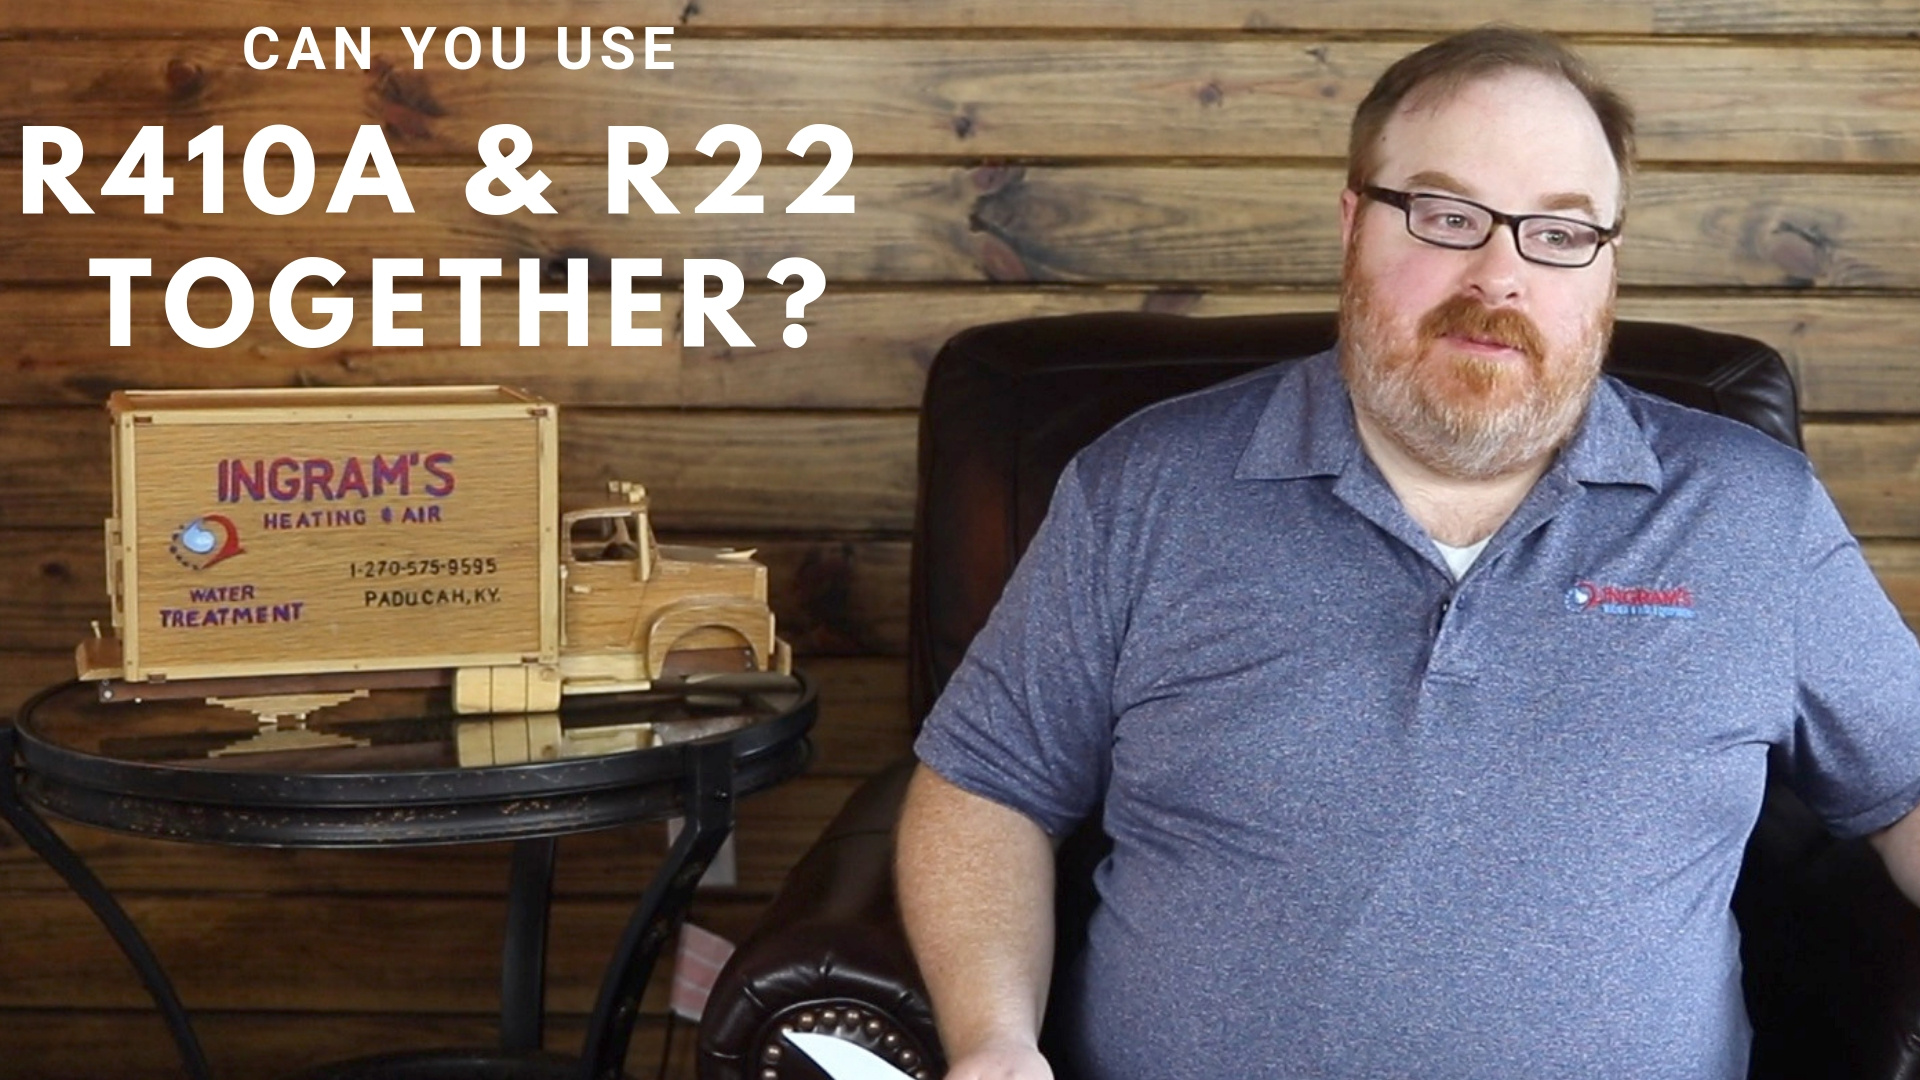 Can I Use R410A and R22 Refrigerant Together? - Ask the Expert Episode 115